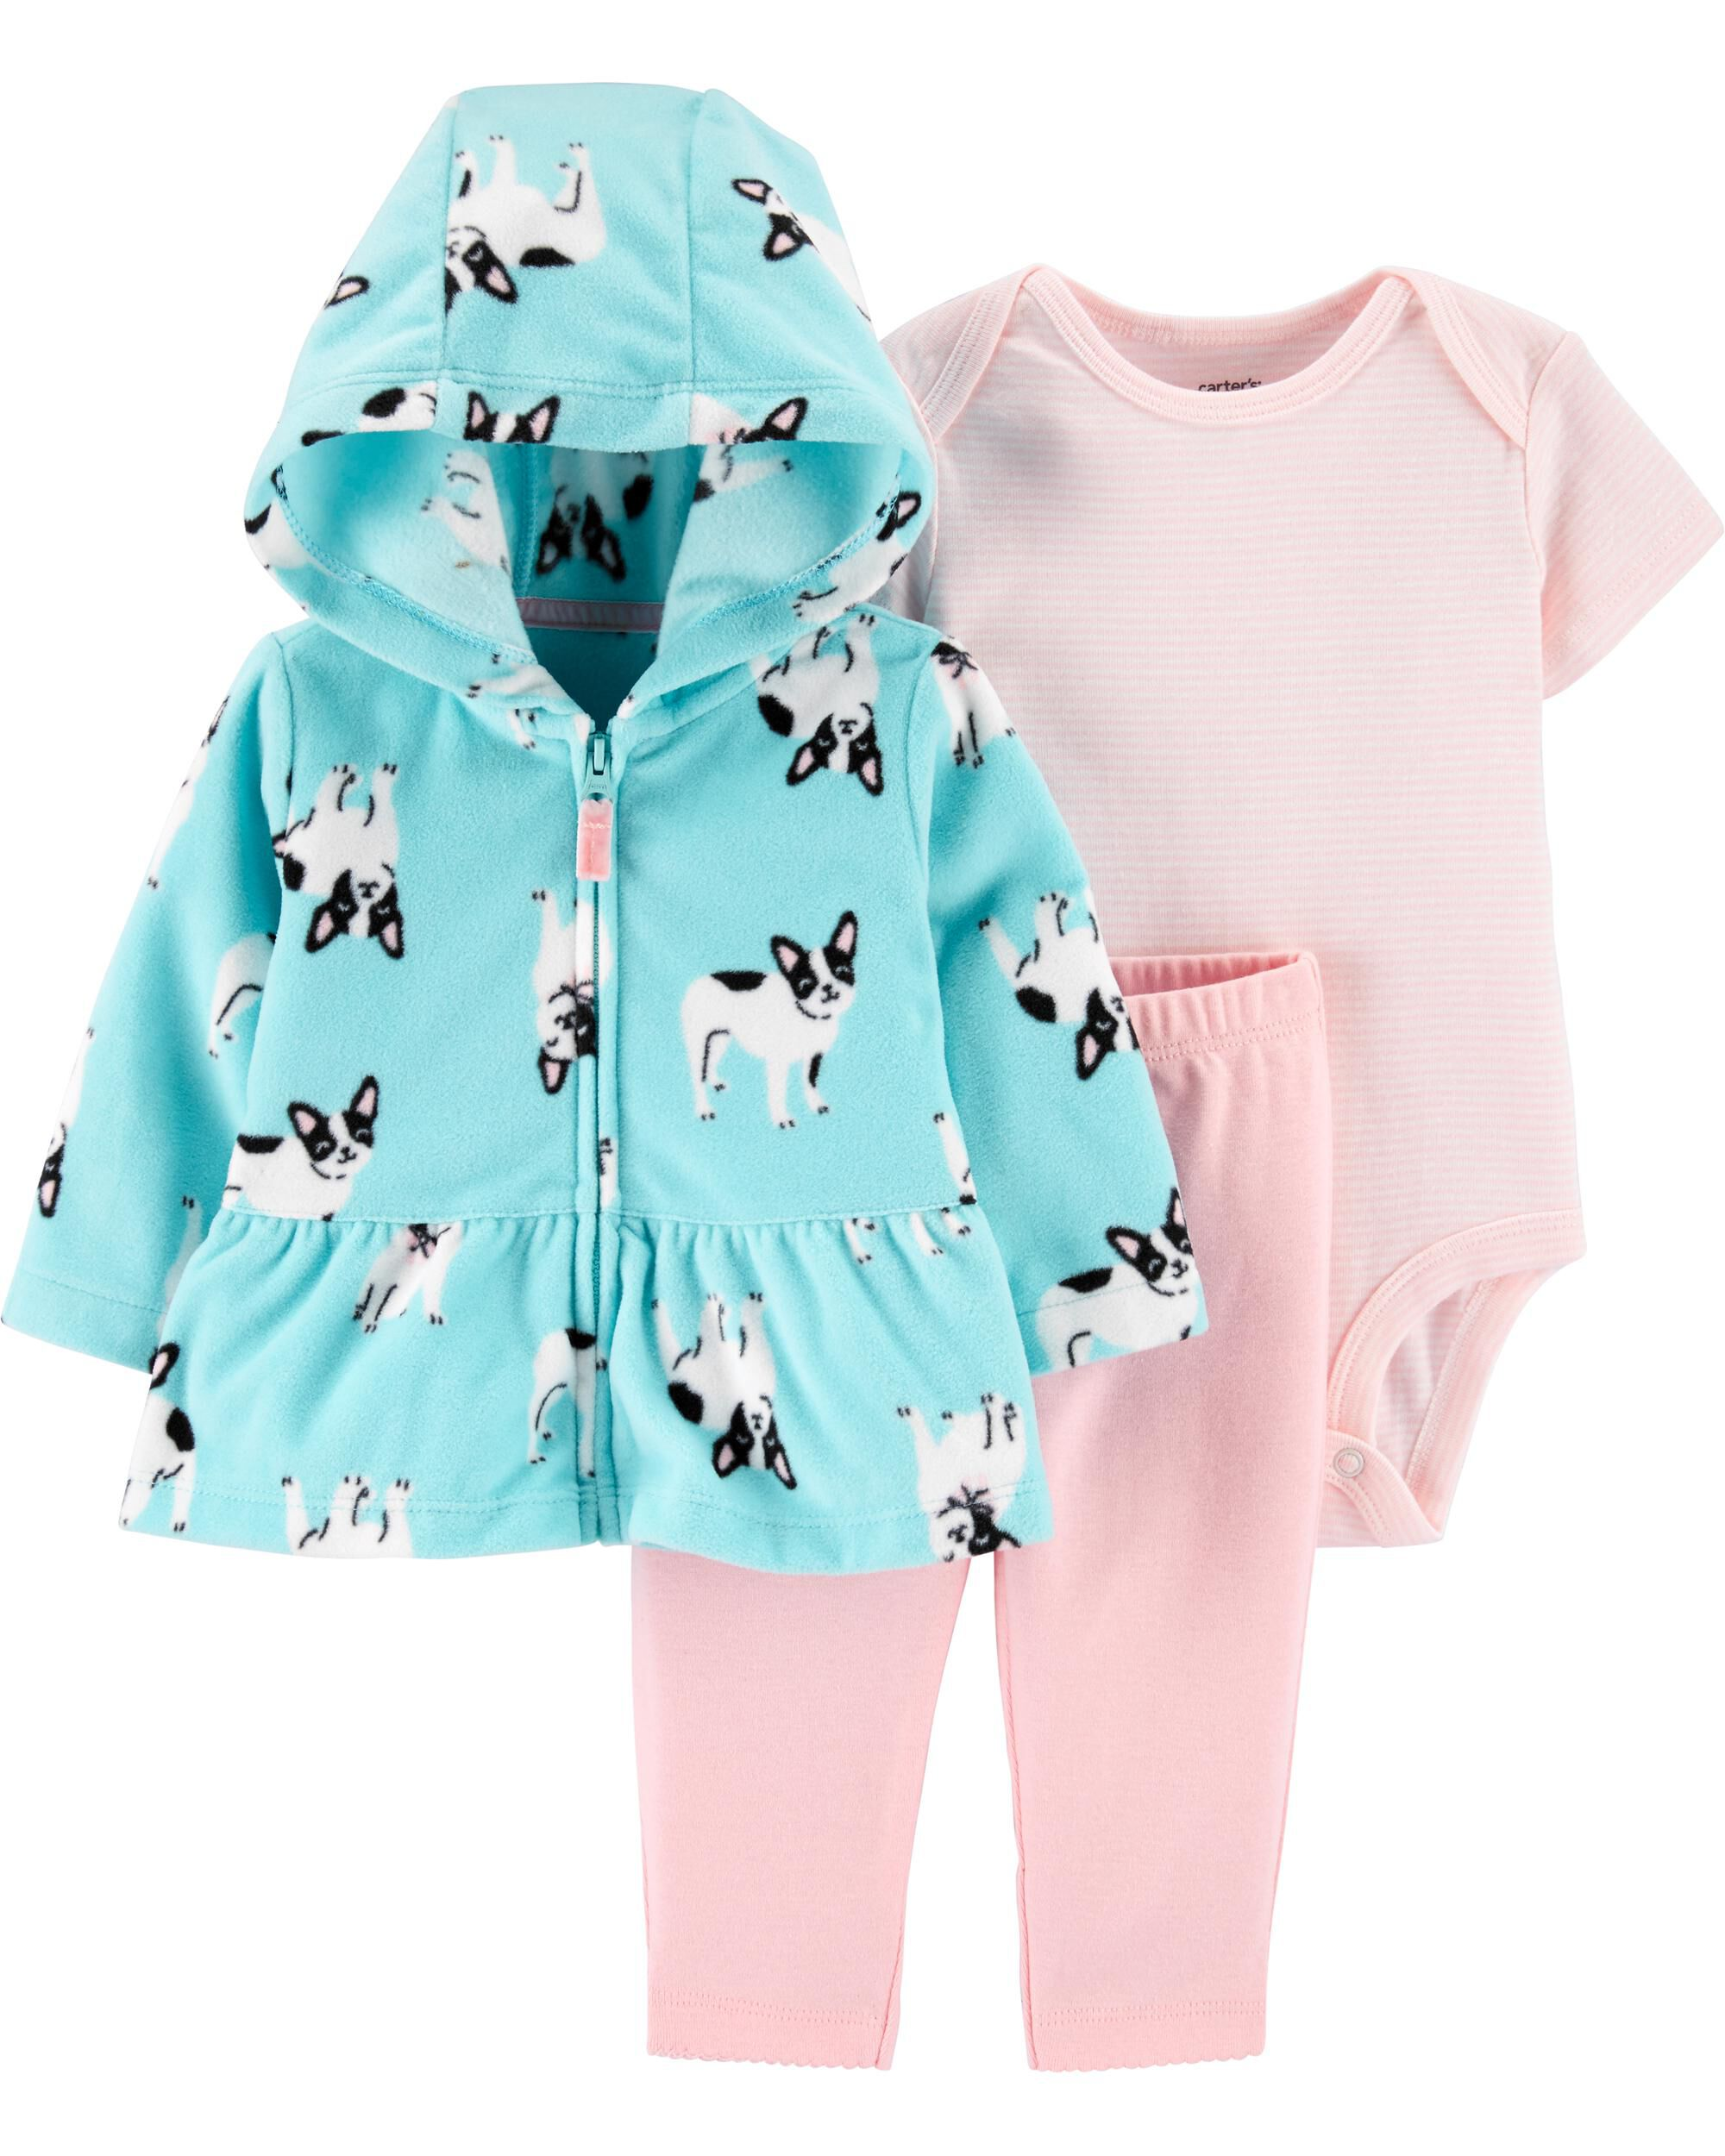 Set Frenchie Clothes Outfit *NEW* 2T Baby Toddler Girls French Bulldog 2-pc